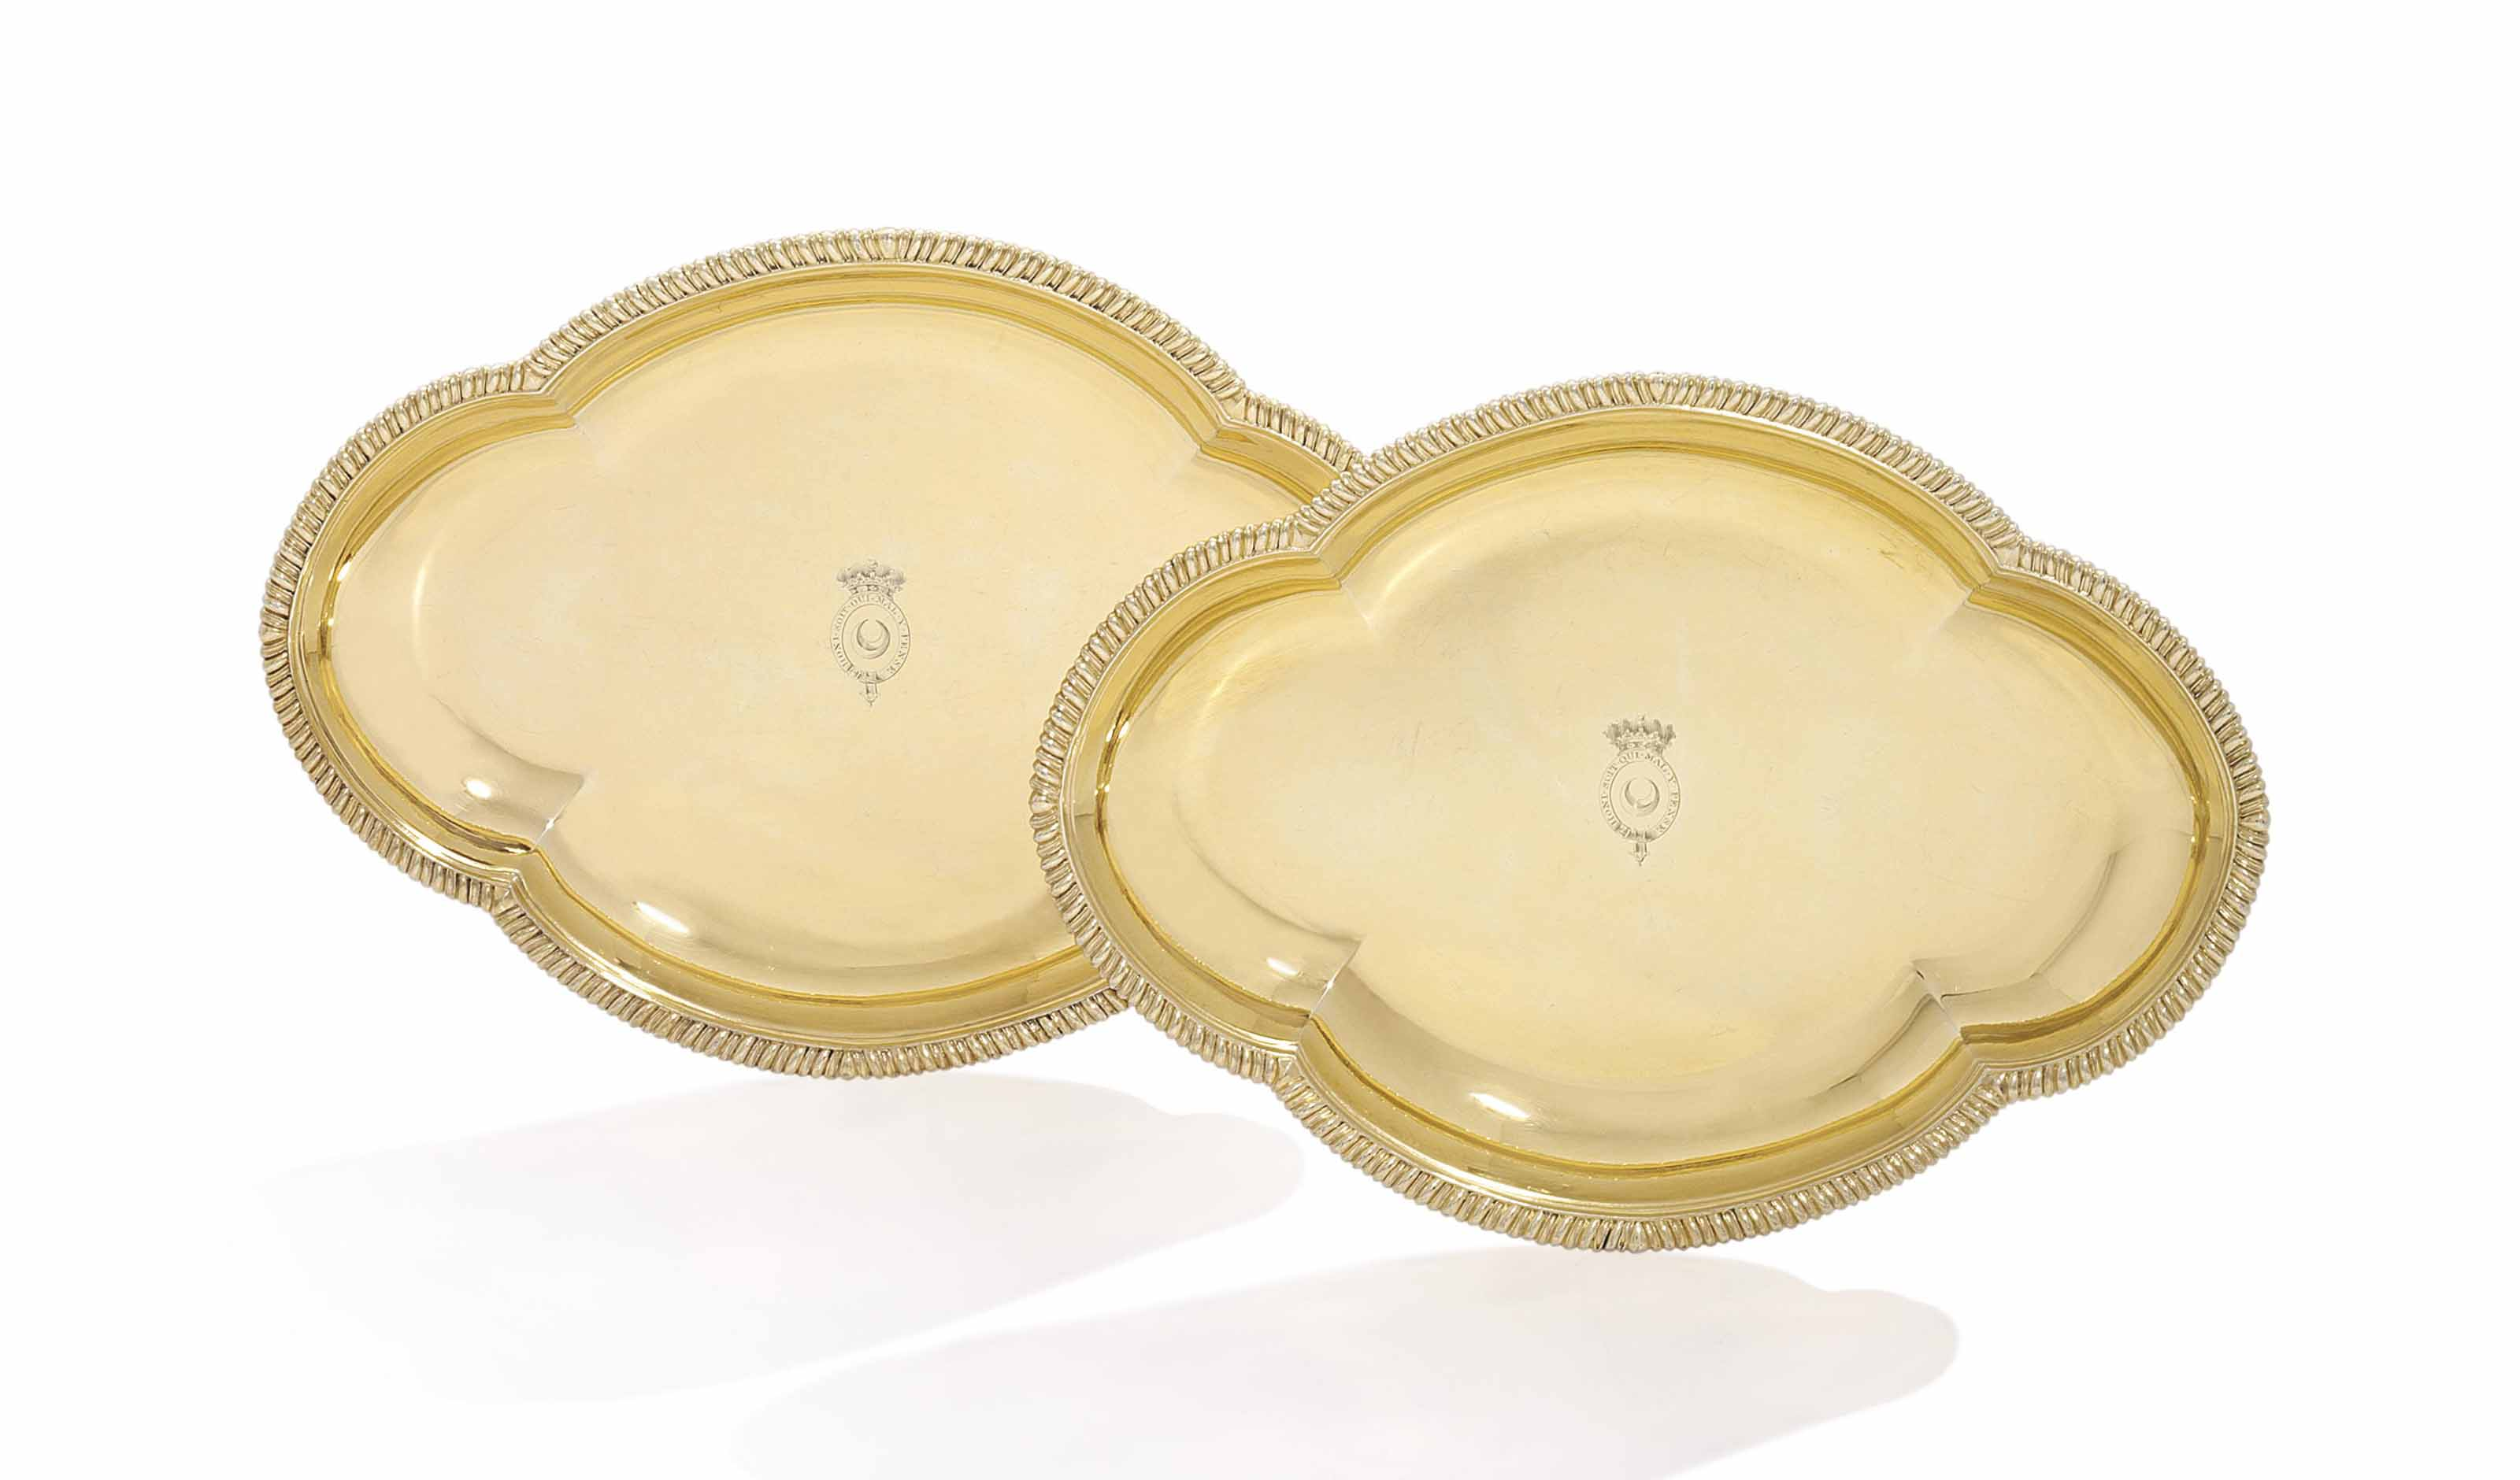 A PAIR OF GEORGE III SILVER-GILT ENTREE-DISHES FROM THE NORTHUMBERLAND SERVICE